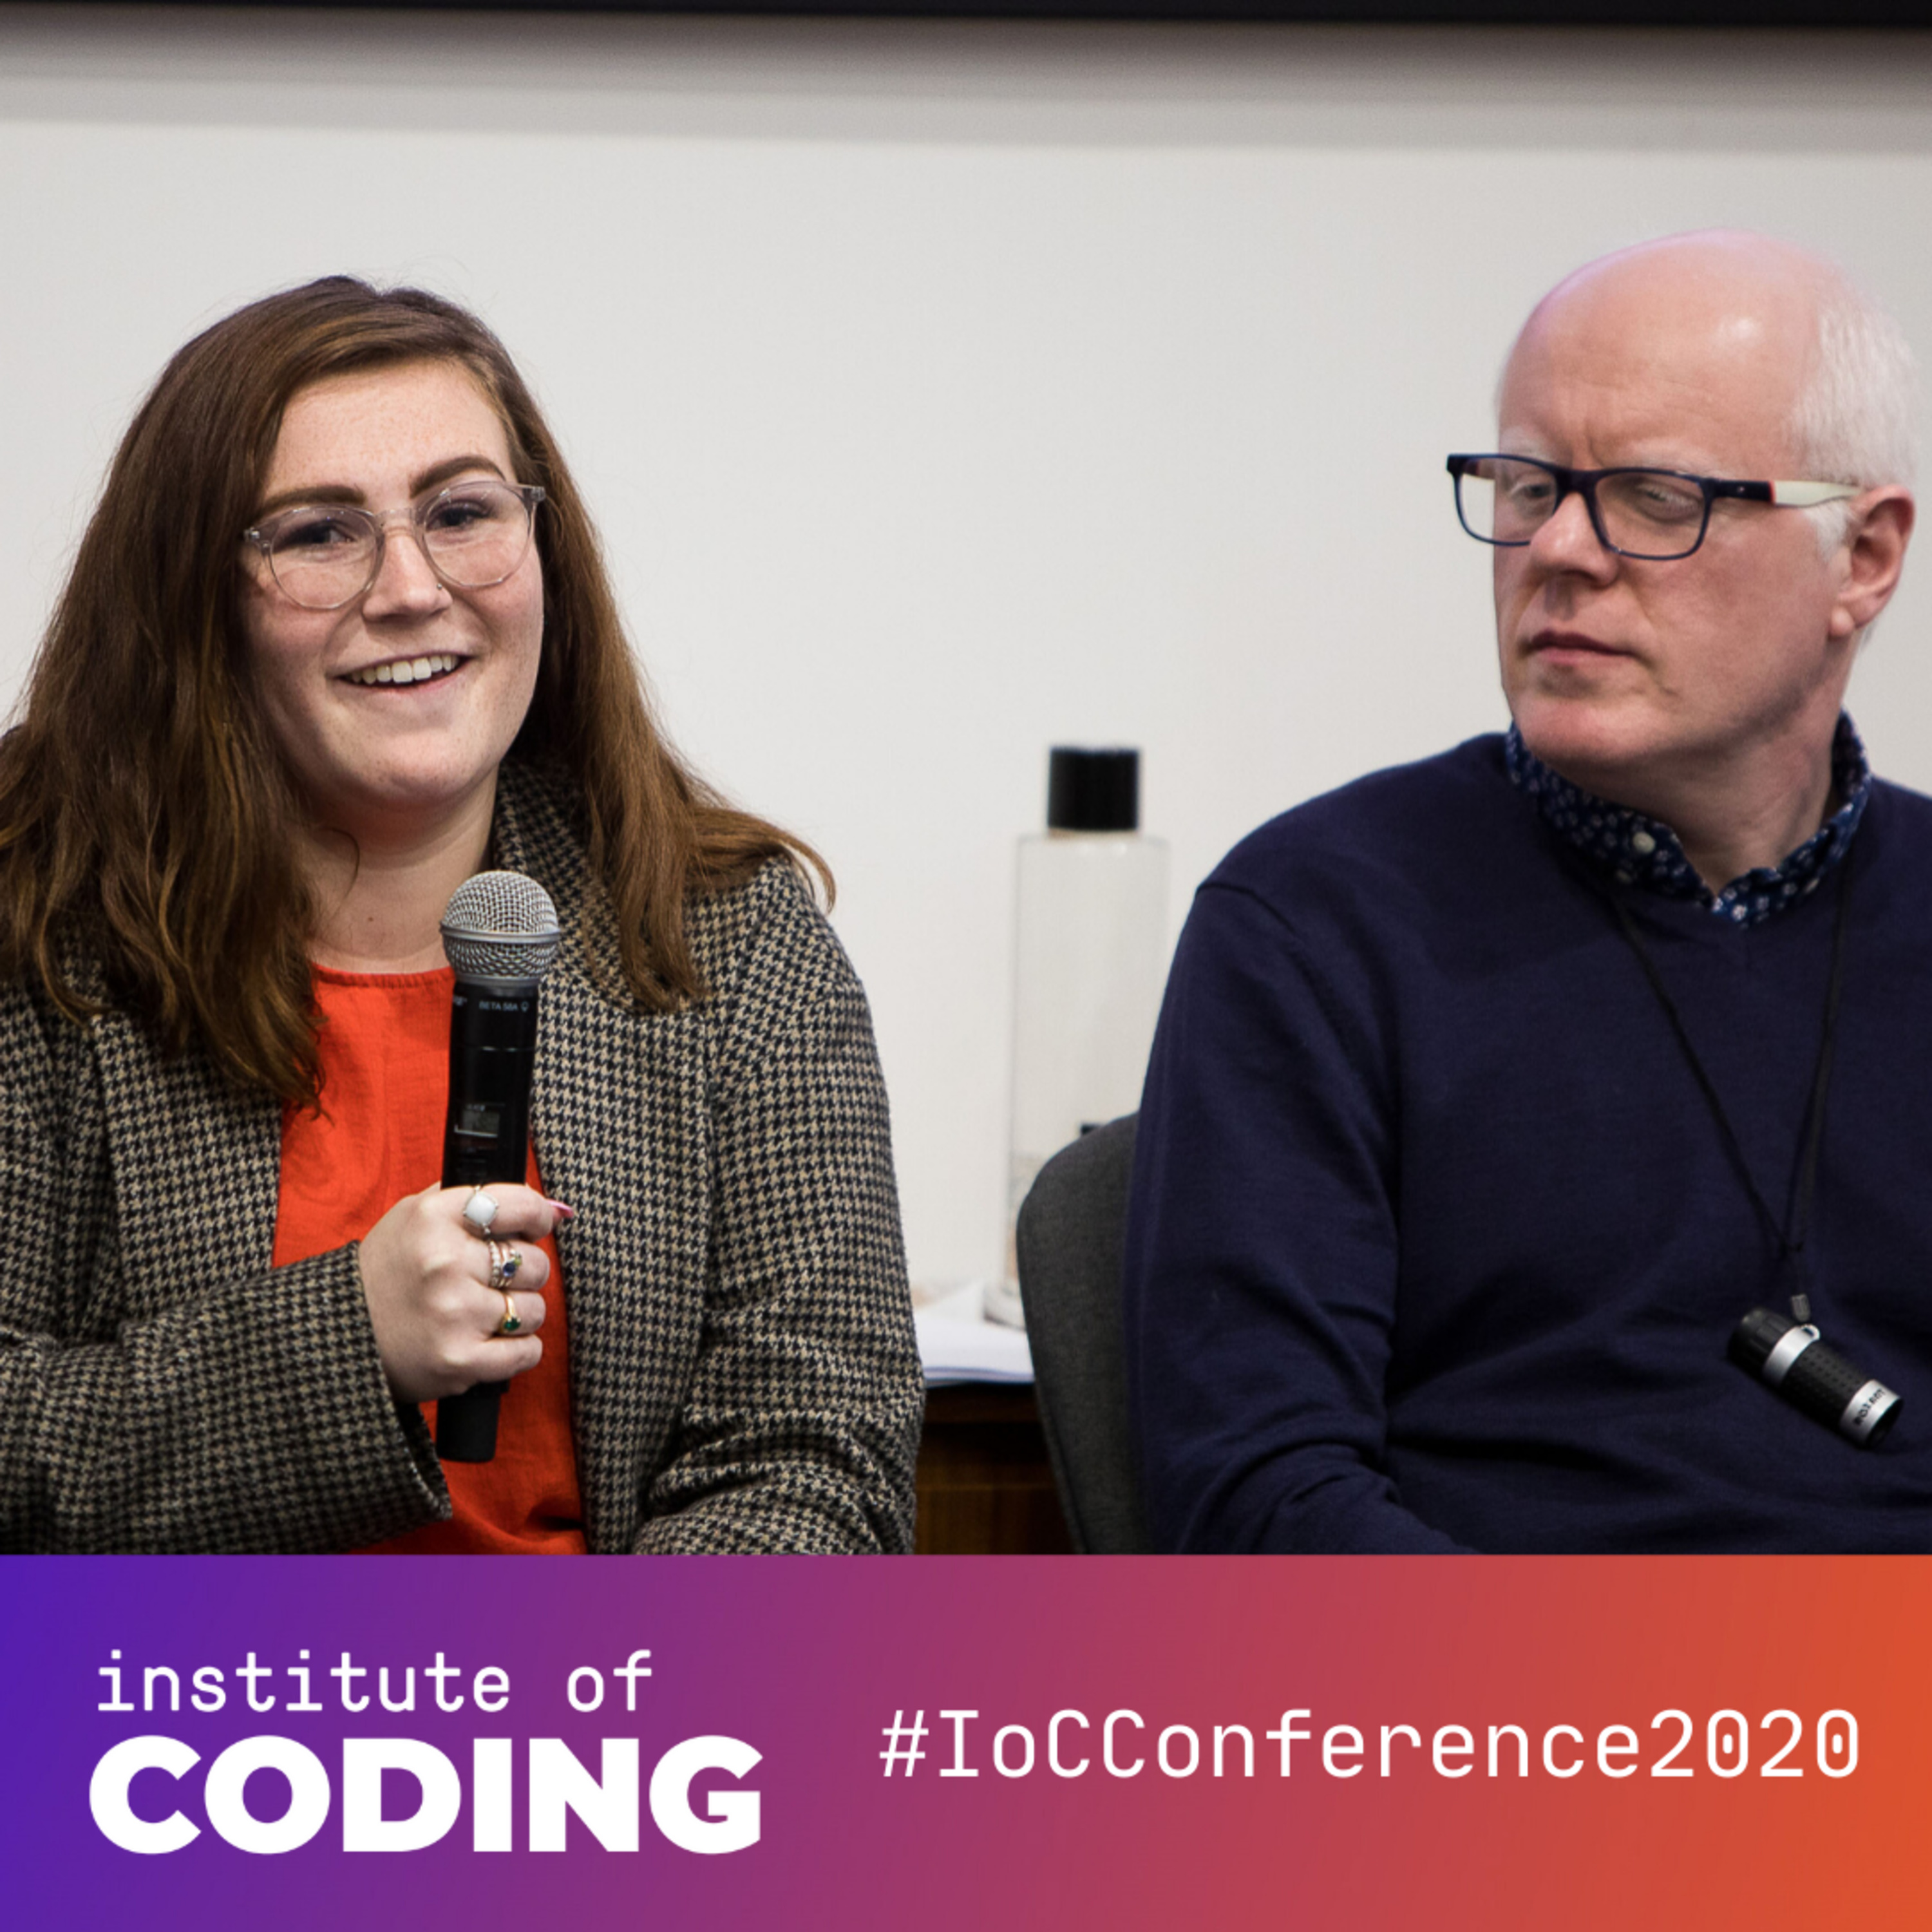 Conference 2020 - Using assistive technology to support learning outcomes